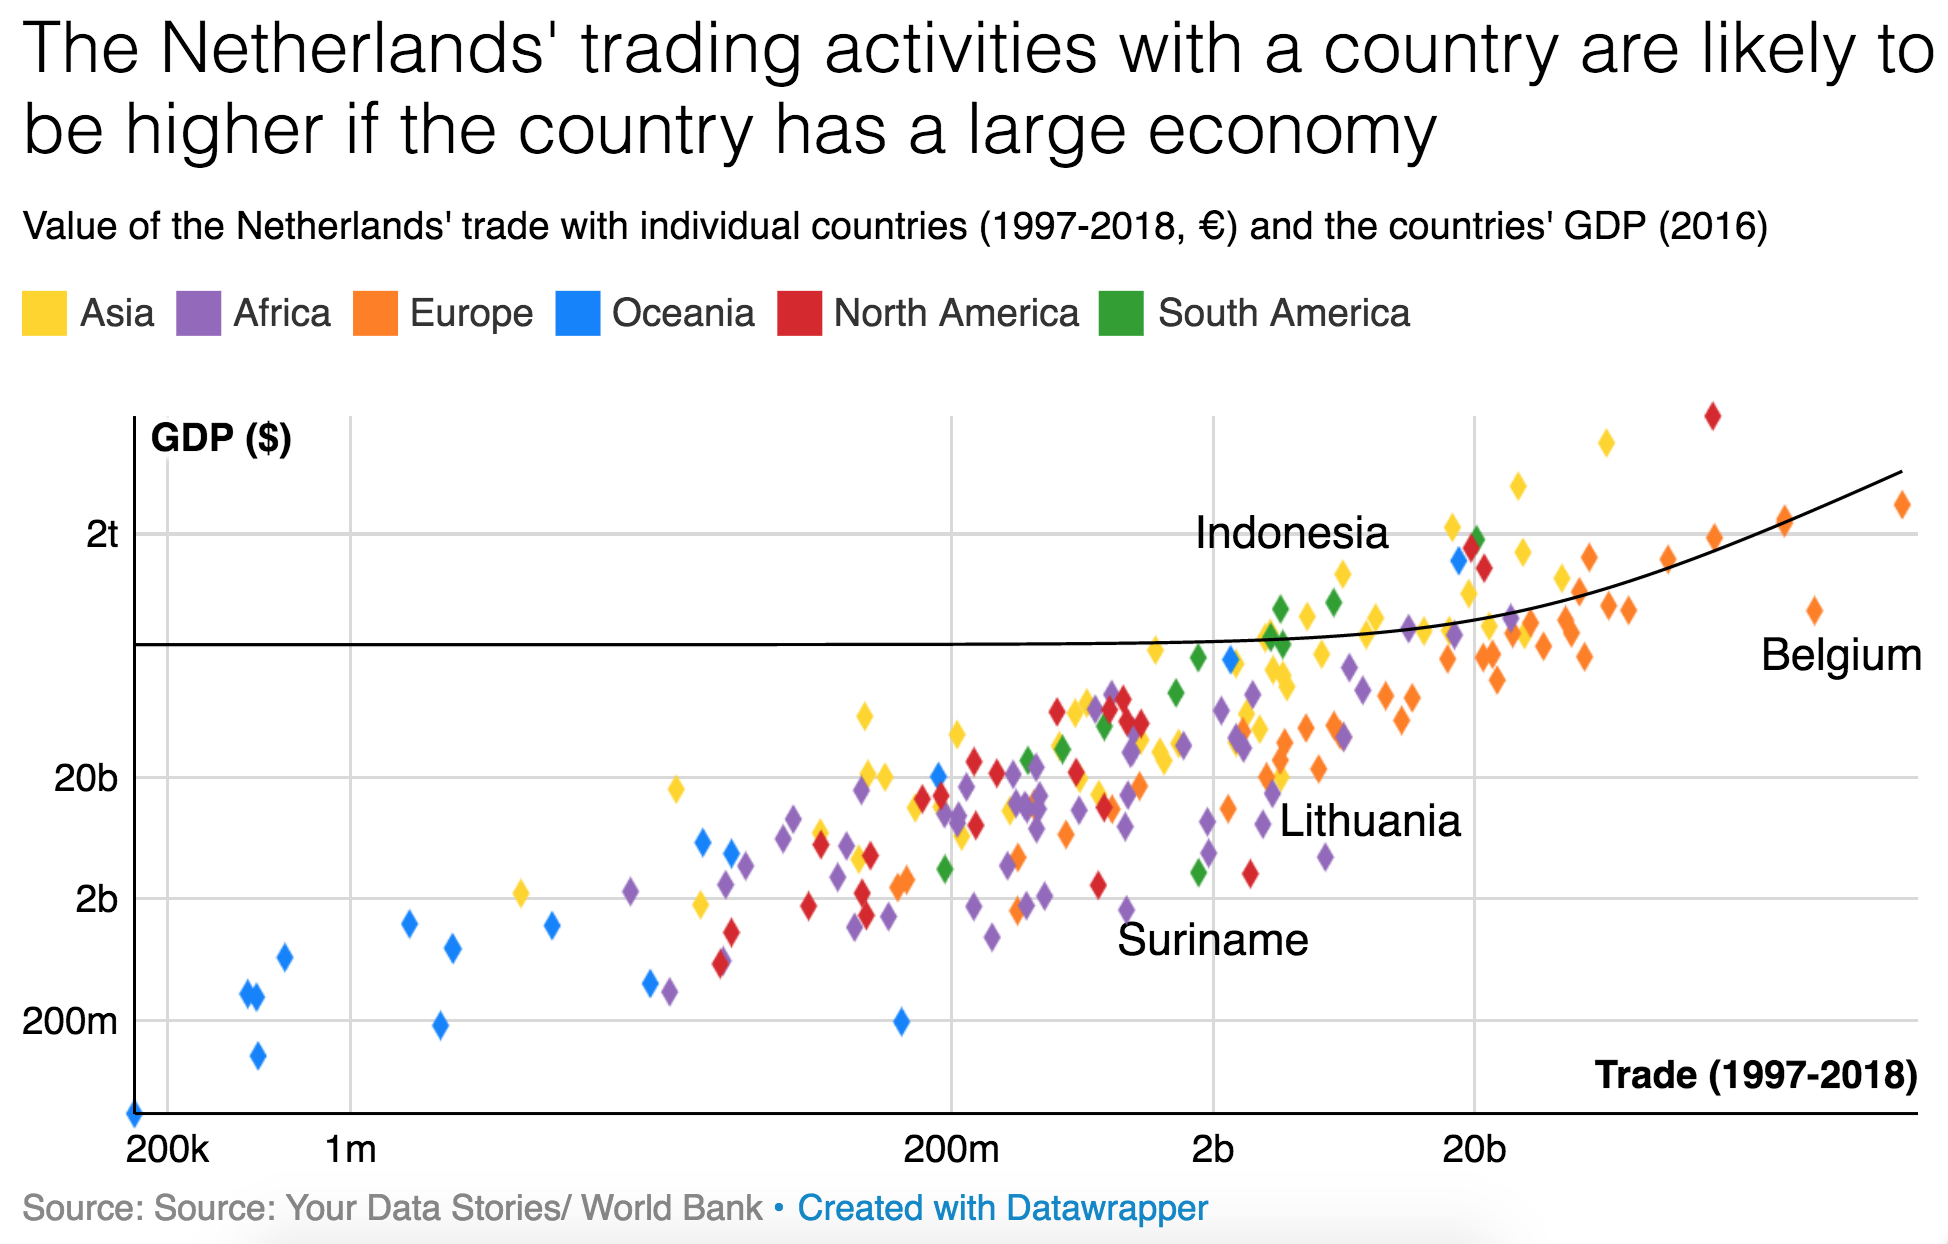 Netherlands trade with countries based on economy size